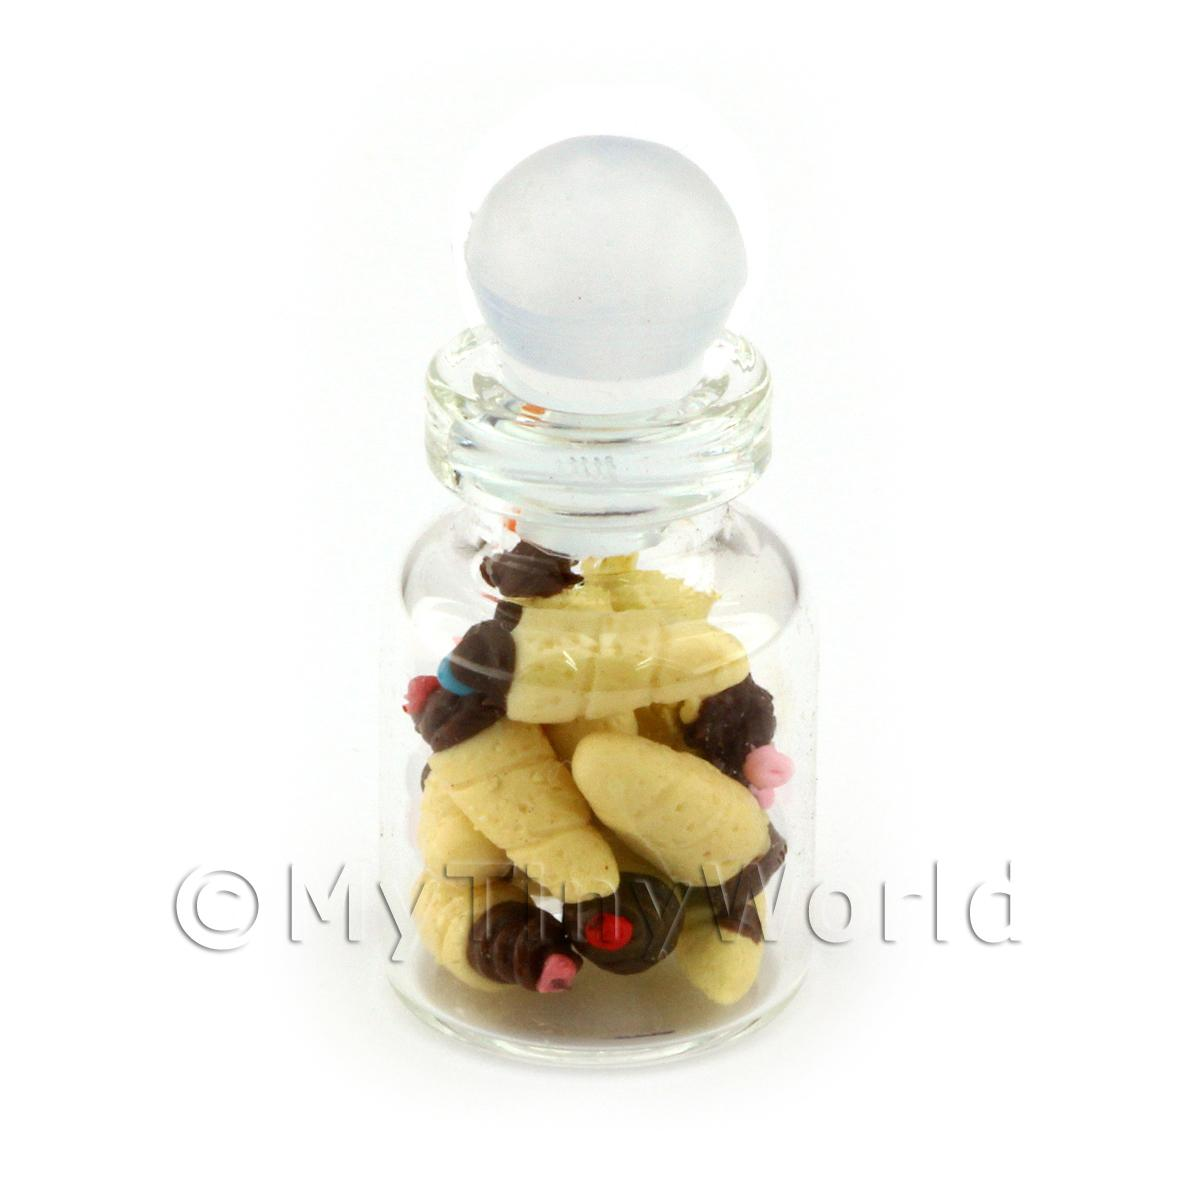 Dolls House Miniature Chocolate Tipped Cones In A Glass Jar